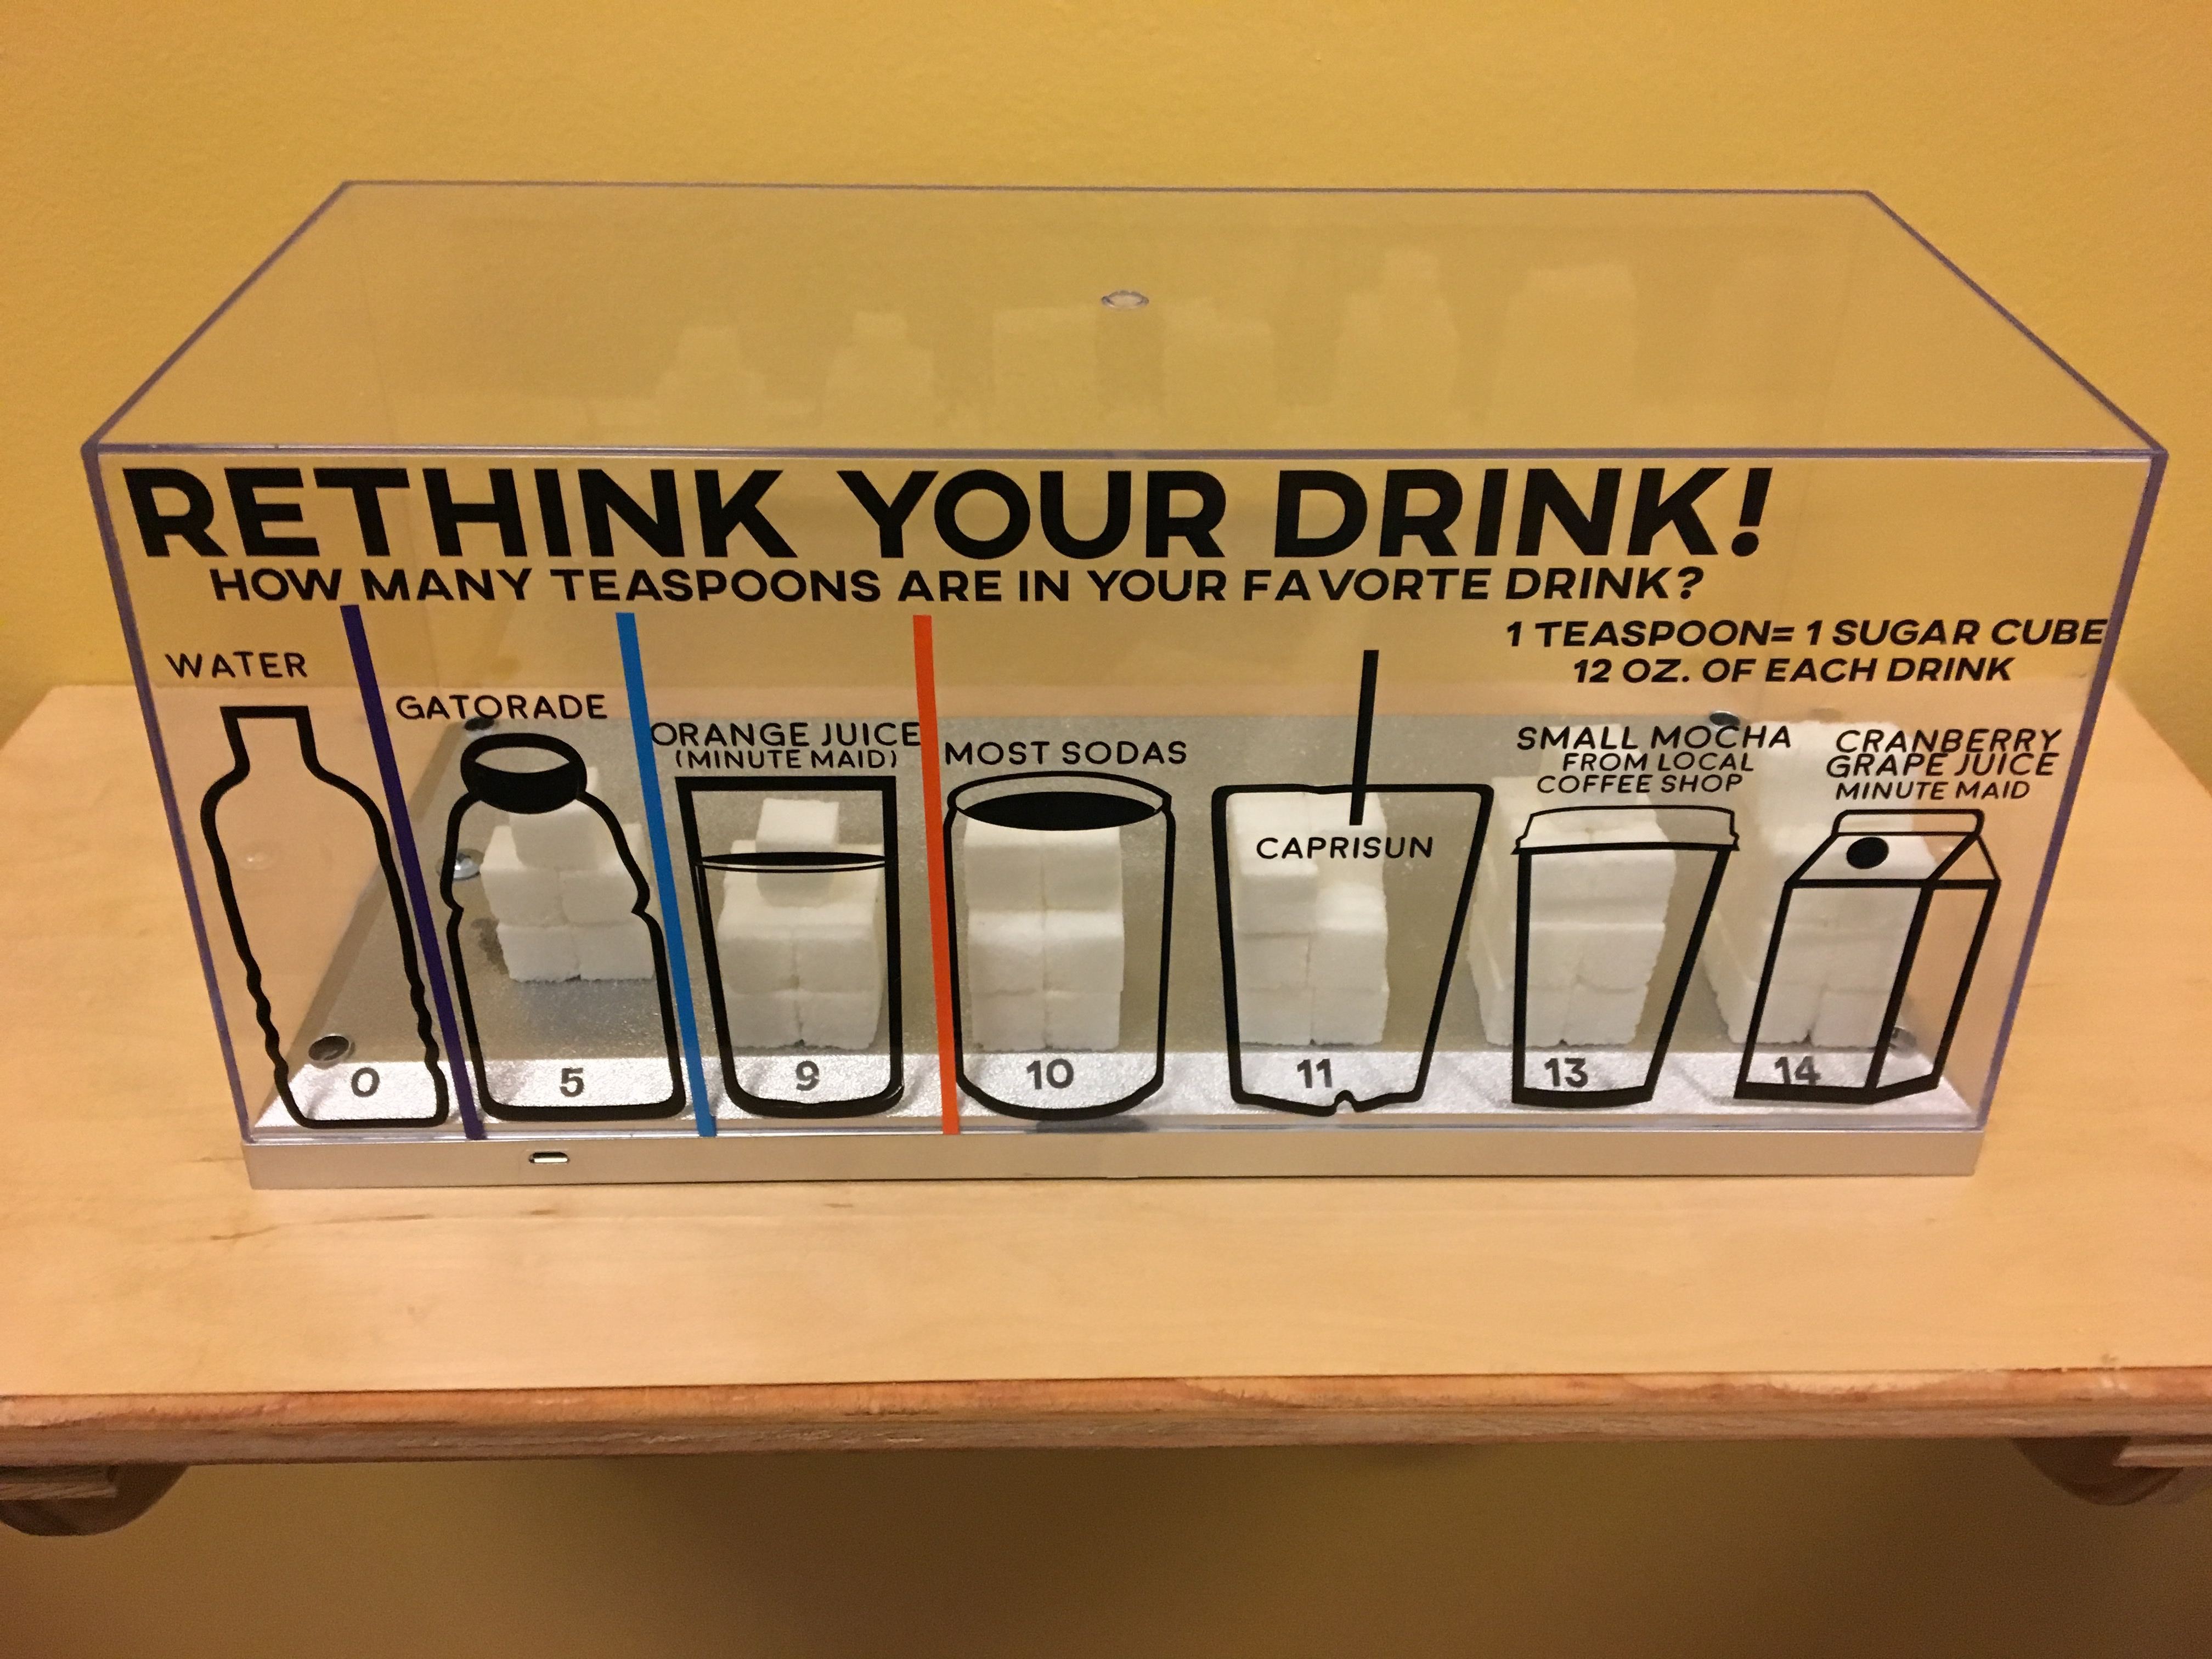 Rethink Your Drink & Sugar